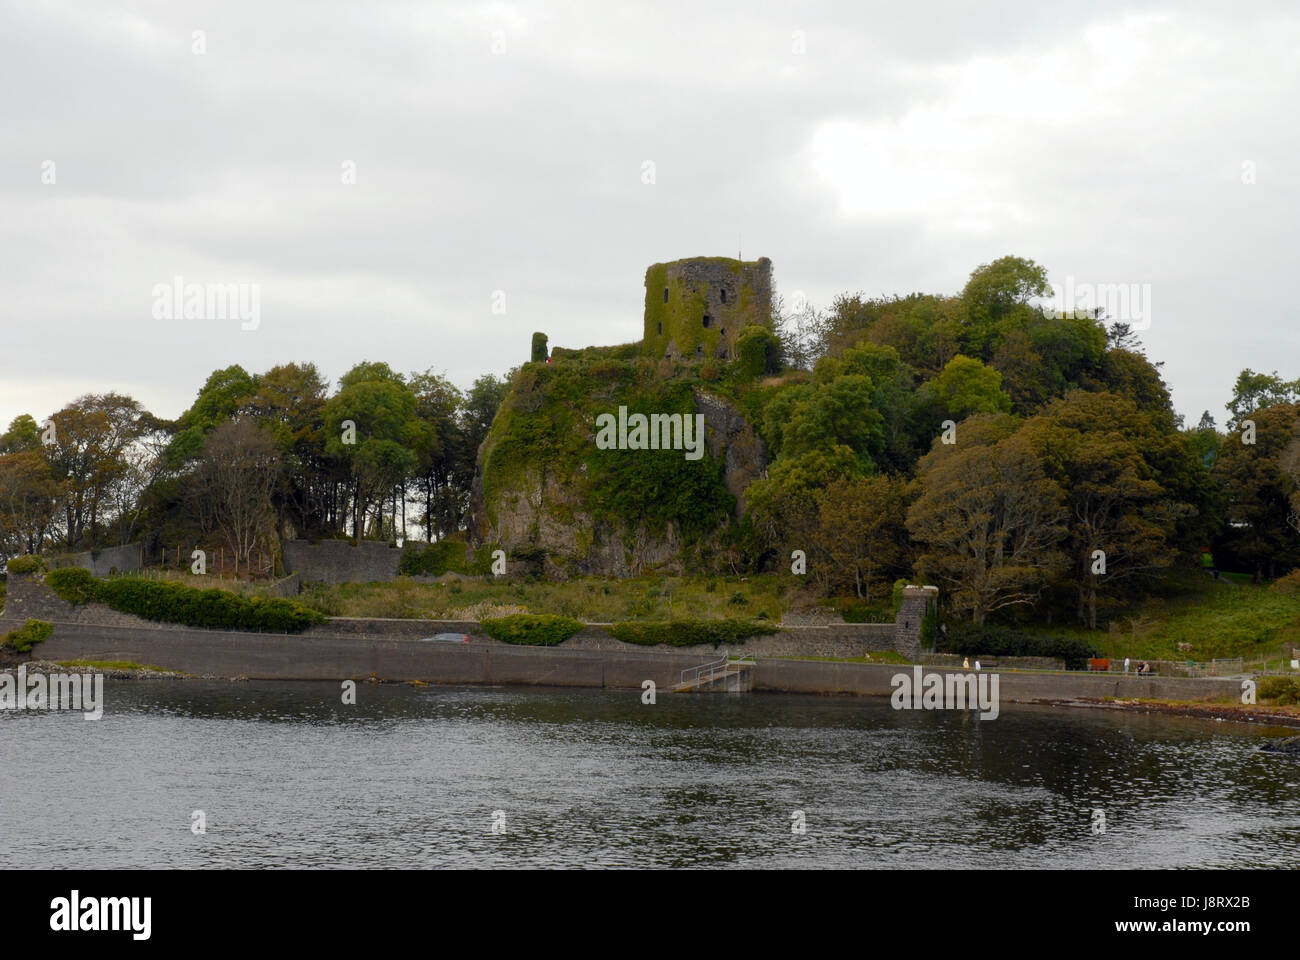 waters, ruin, scotland, building, buildings, tower, historical, tree, trees, Stock Photo